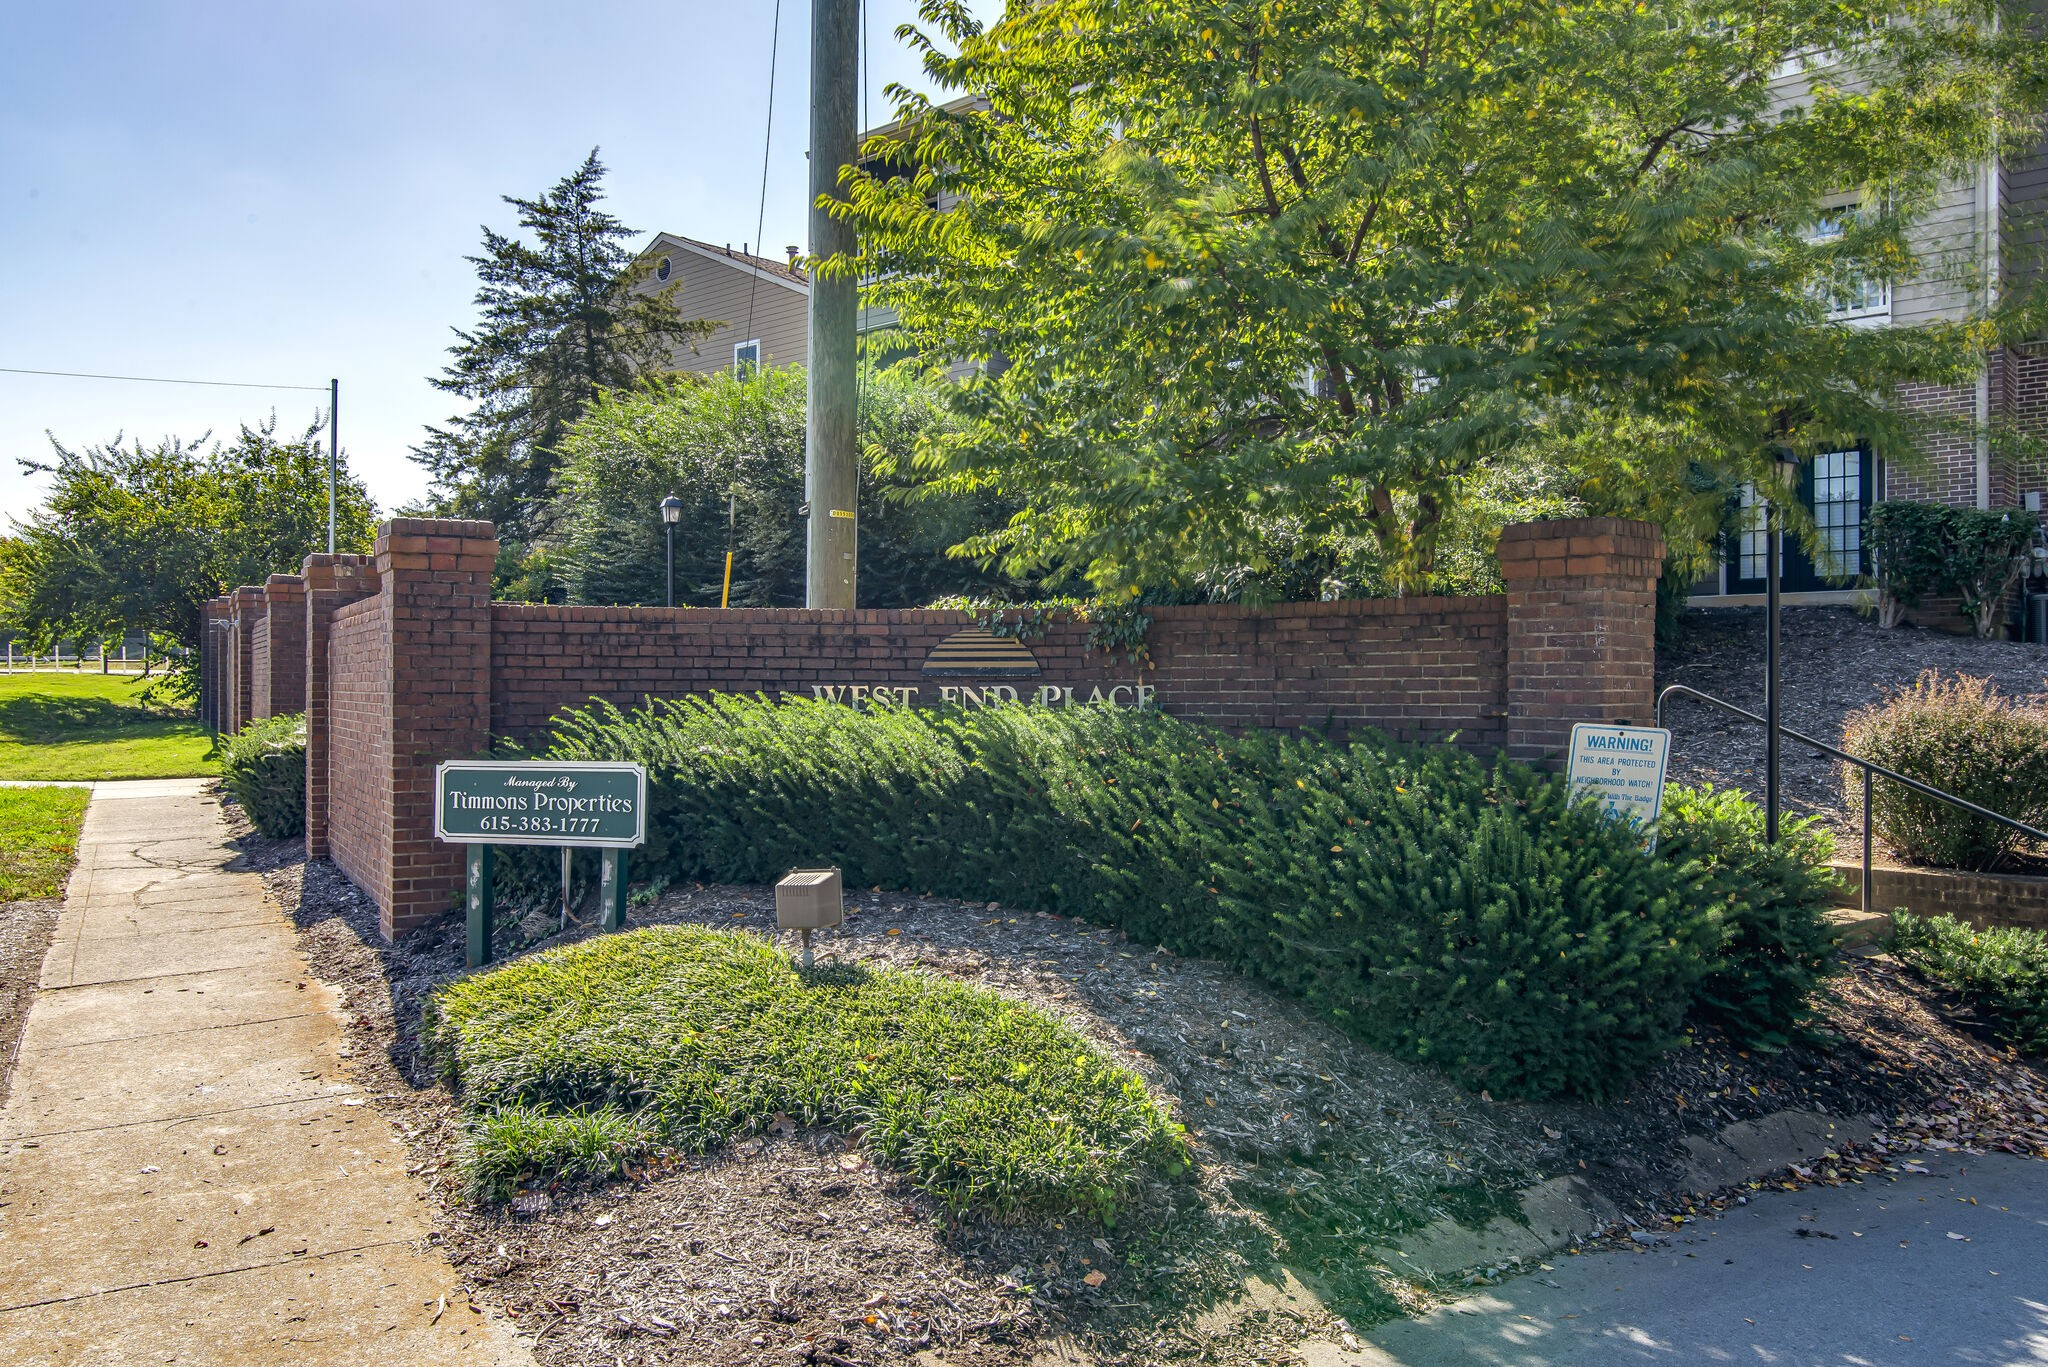 LOCATION LOCATION LOCATION! Less than 5 minutes from Sylvan Park and only 10 min from Downtown, close to everything! This beautiful condo in West End Place has 2 Beds and 2 Full Baths. Great floor plan with large primary bedroom, new paint, and an updated kitchen. There are a large washer and dryer in the unit. A great porch with a lush green view and extra storage space. Beautiful Community Pool! This is a great rental/investment opportunity. One of the best locations in the building!